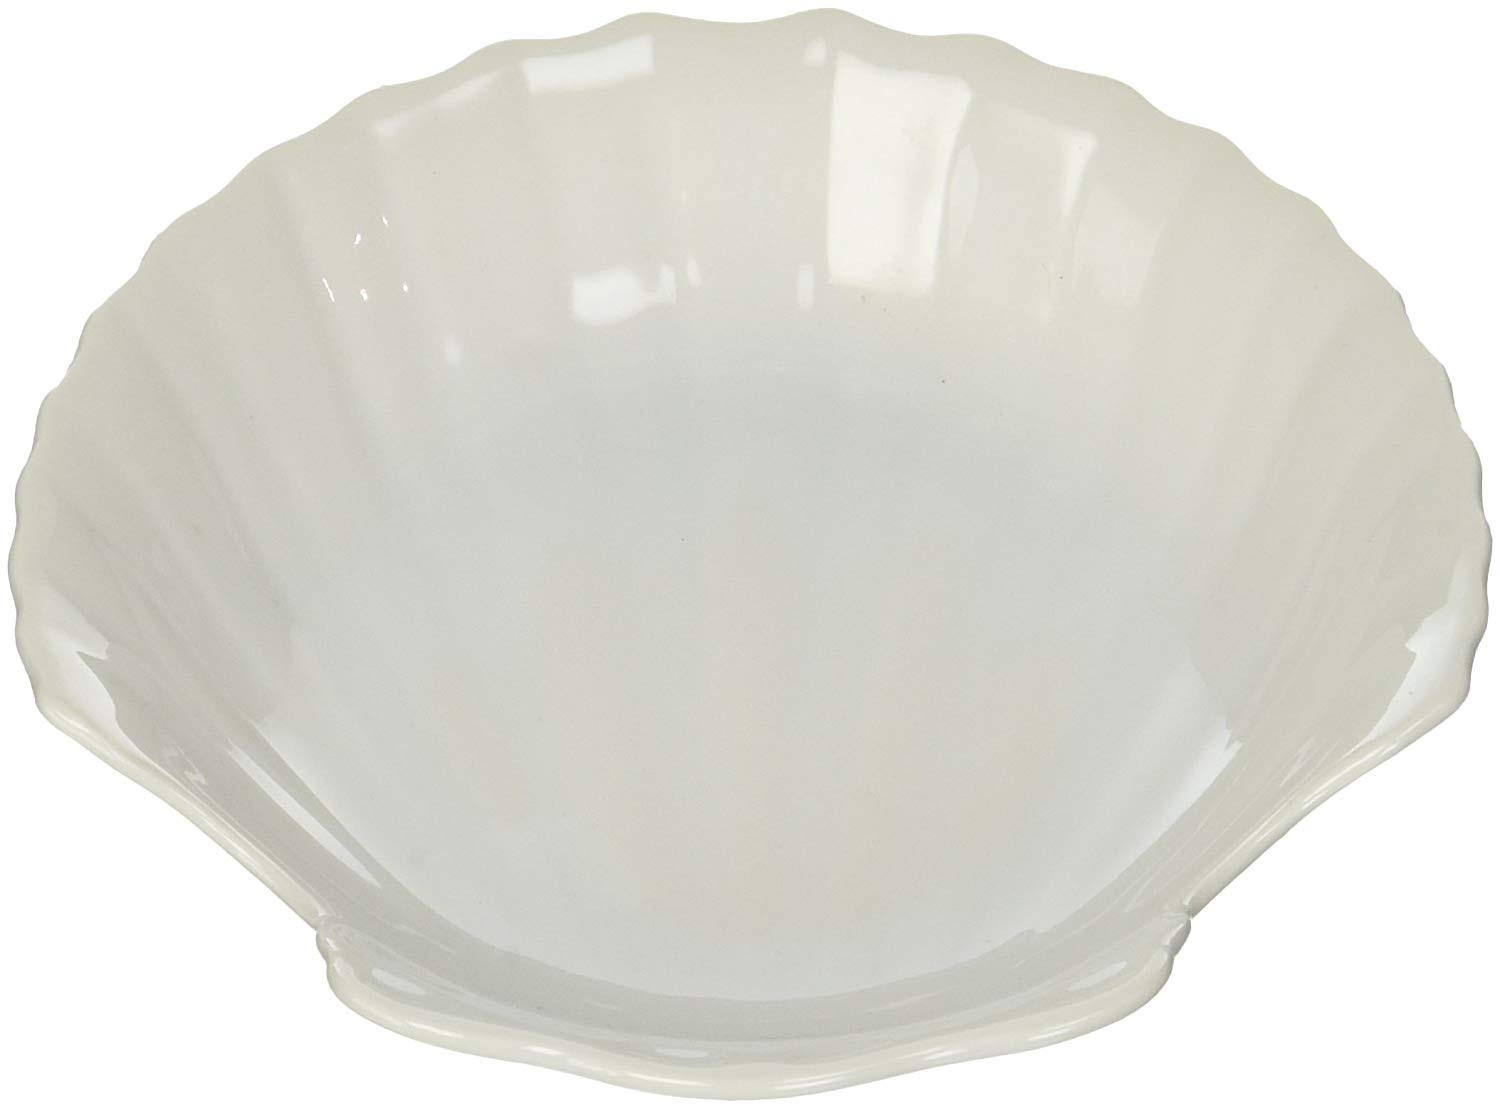 Cheap Fish Bowl Vases wholesale Of Amazon Com Hic 25875 5 Shell Dish 5 5 Kitchen Dining Throughout 71od Il1enl Sl1500